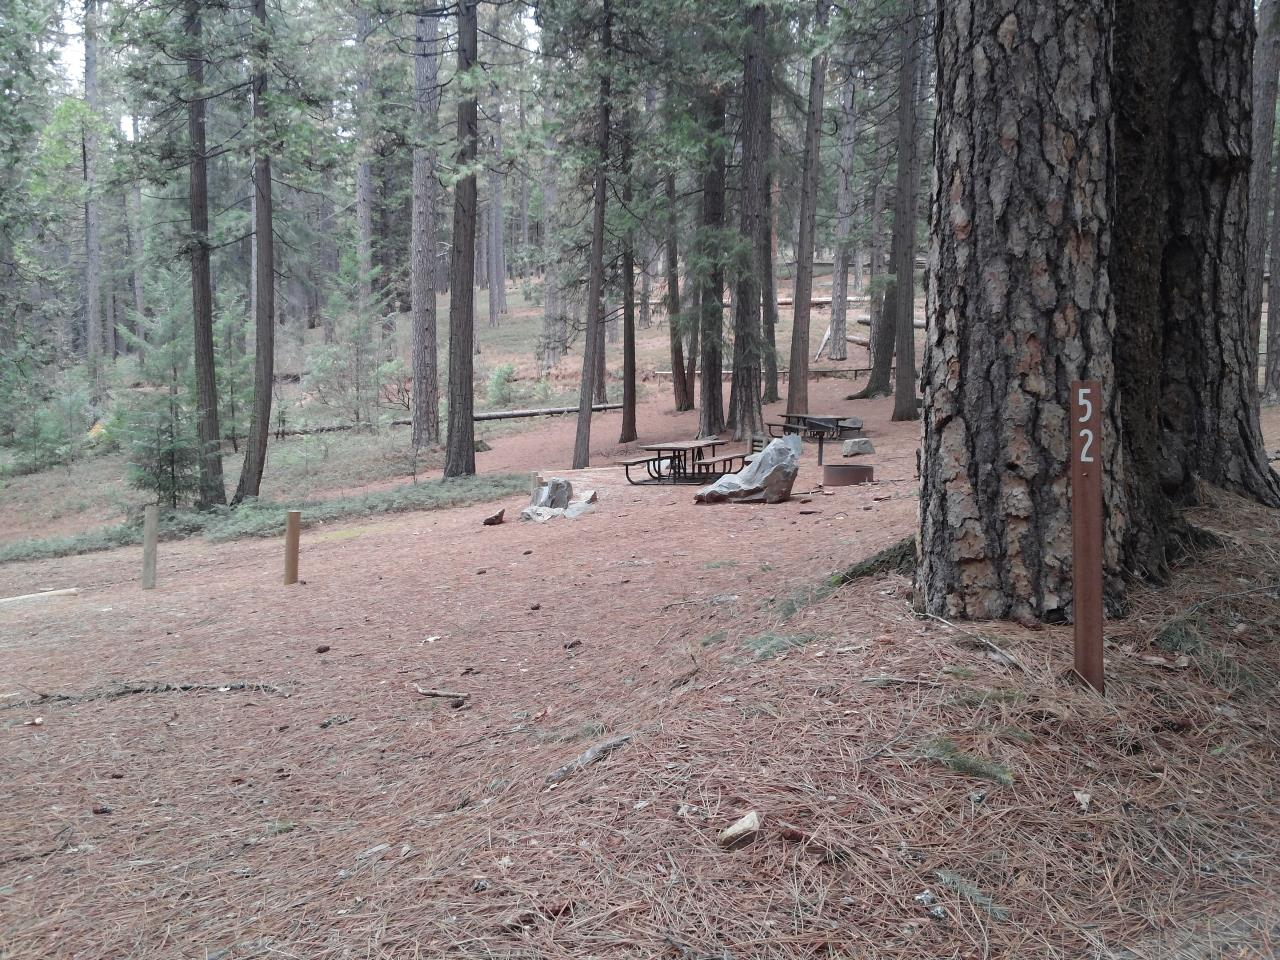 Sierra Spur site #52 - 2 vehicles, tent only - semi-shade, level